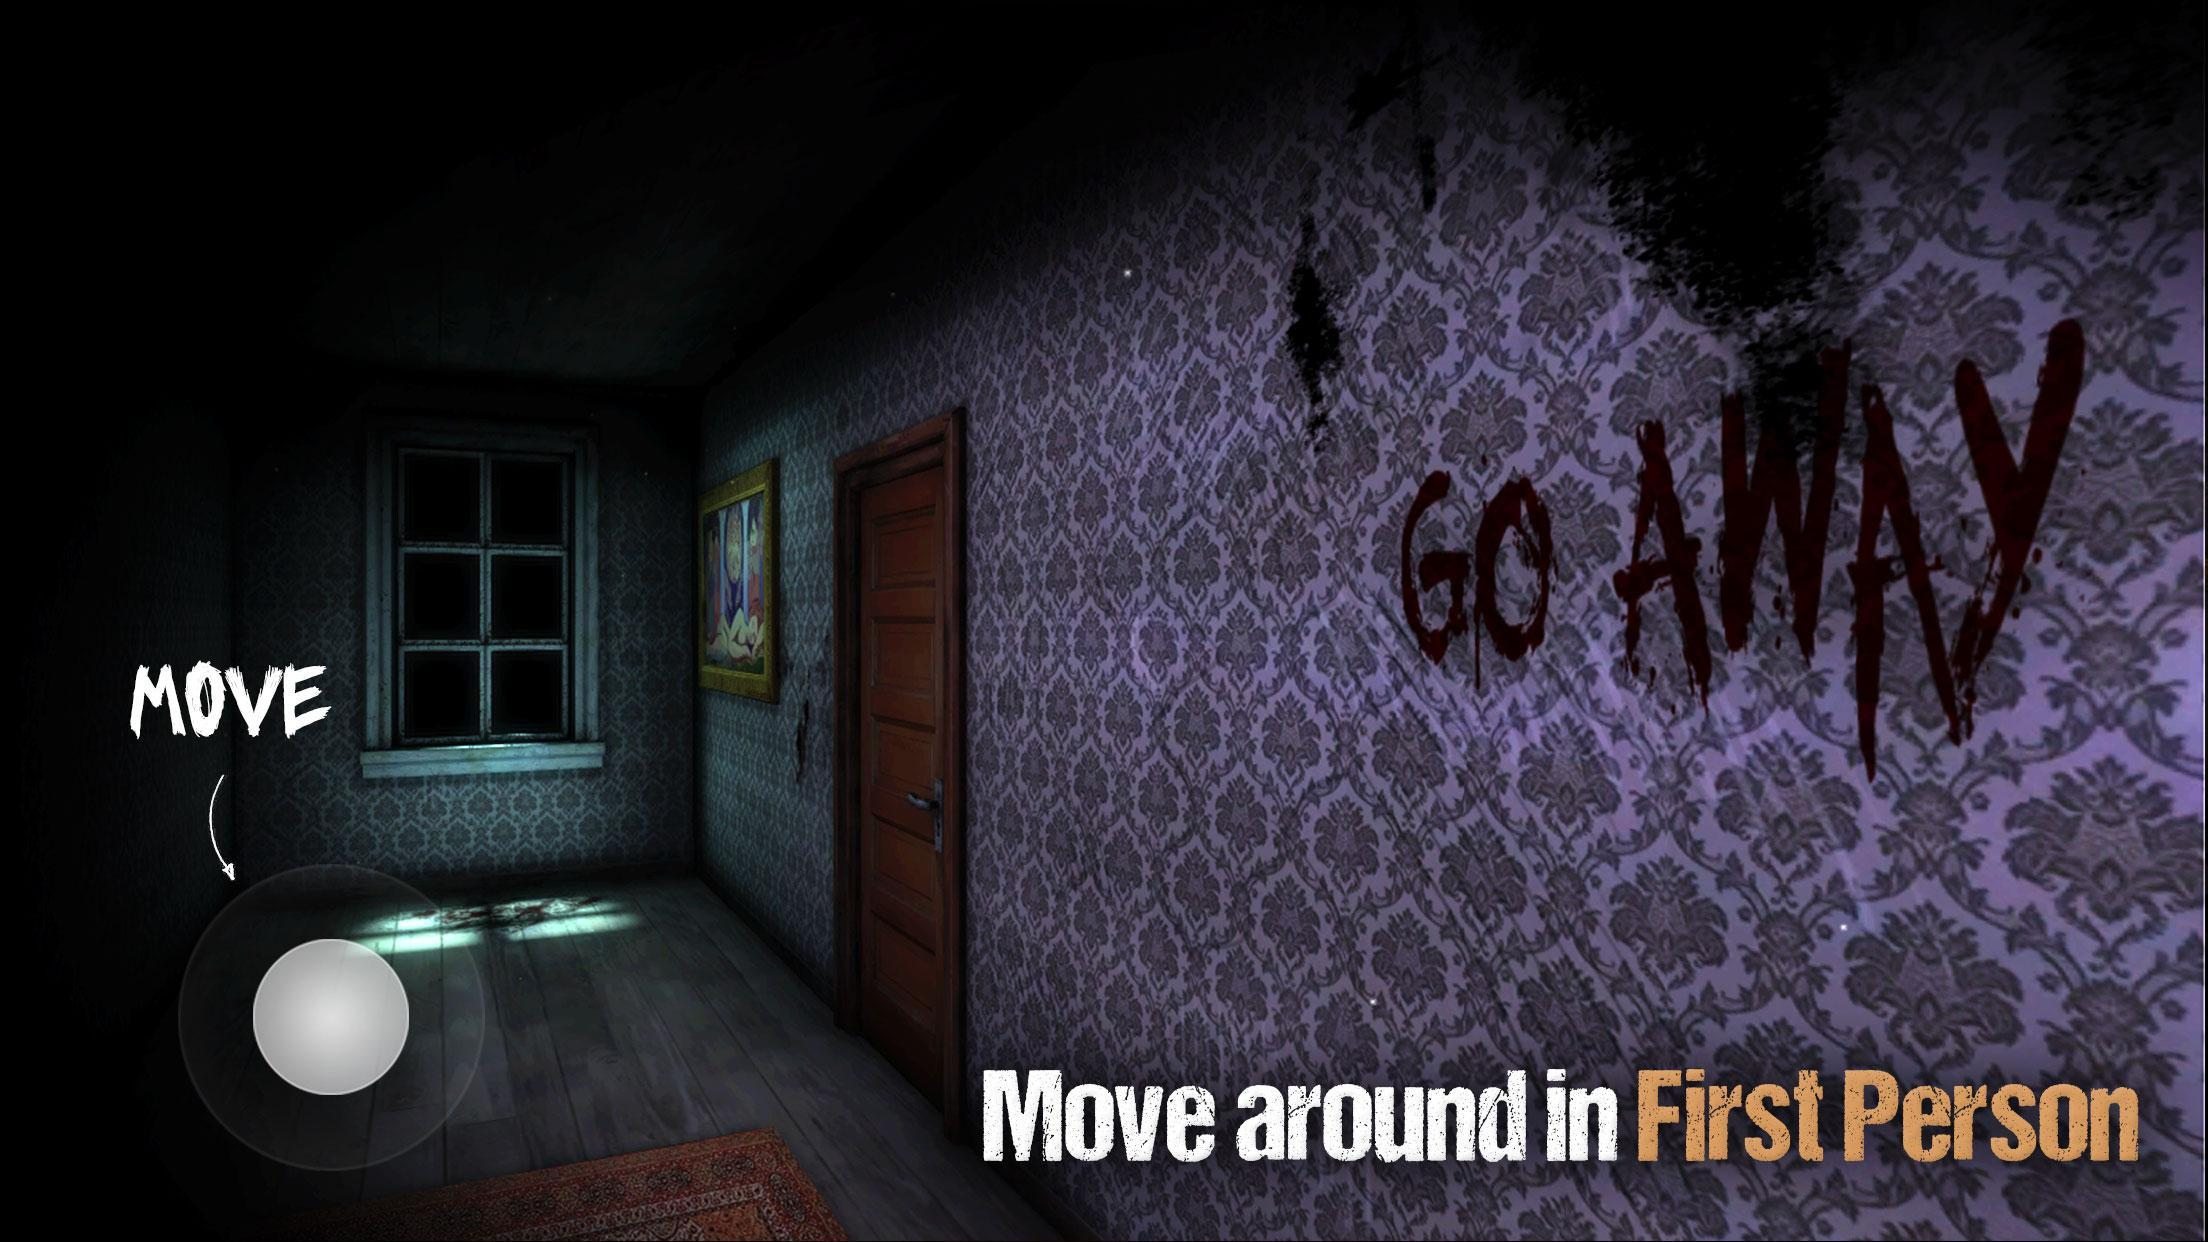 Sinister Edge Scary Horror Games 2.4.1 Screenshot 2